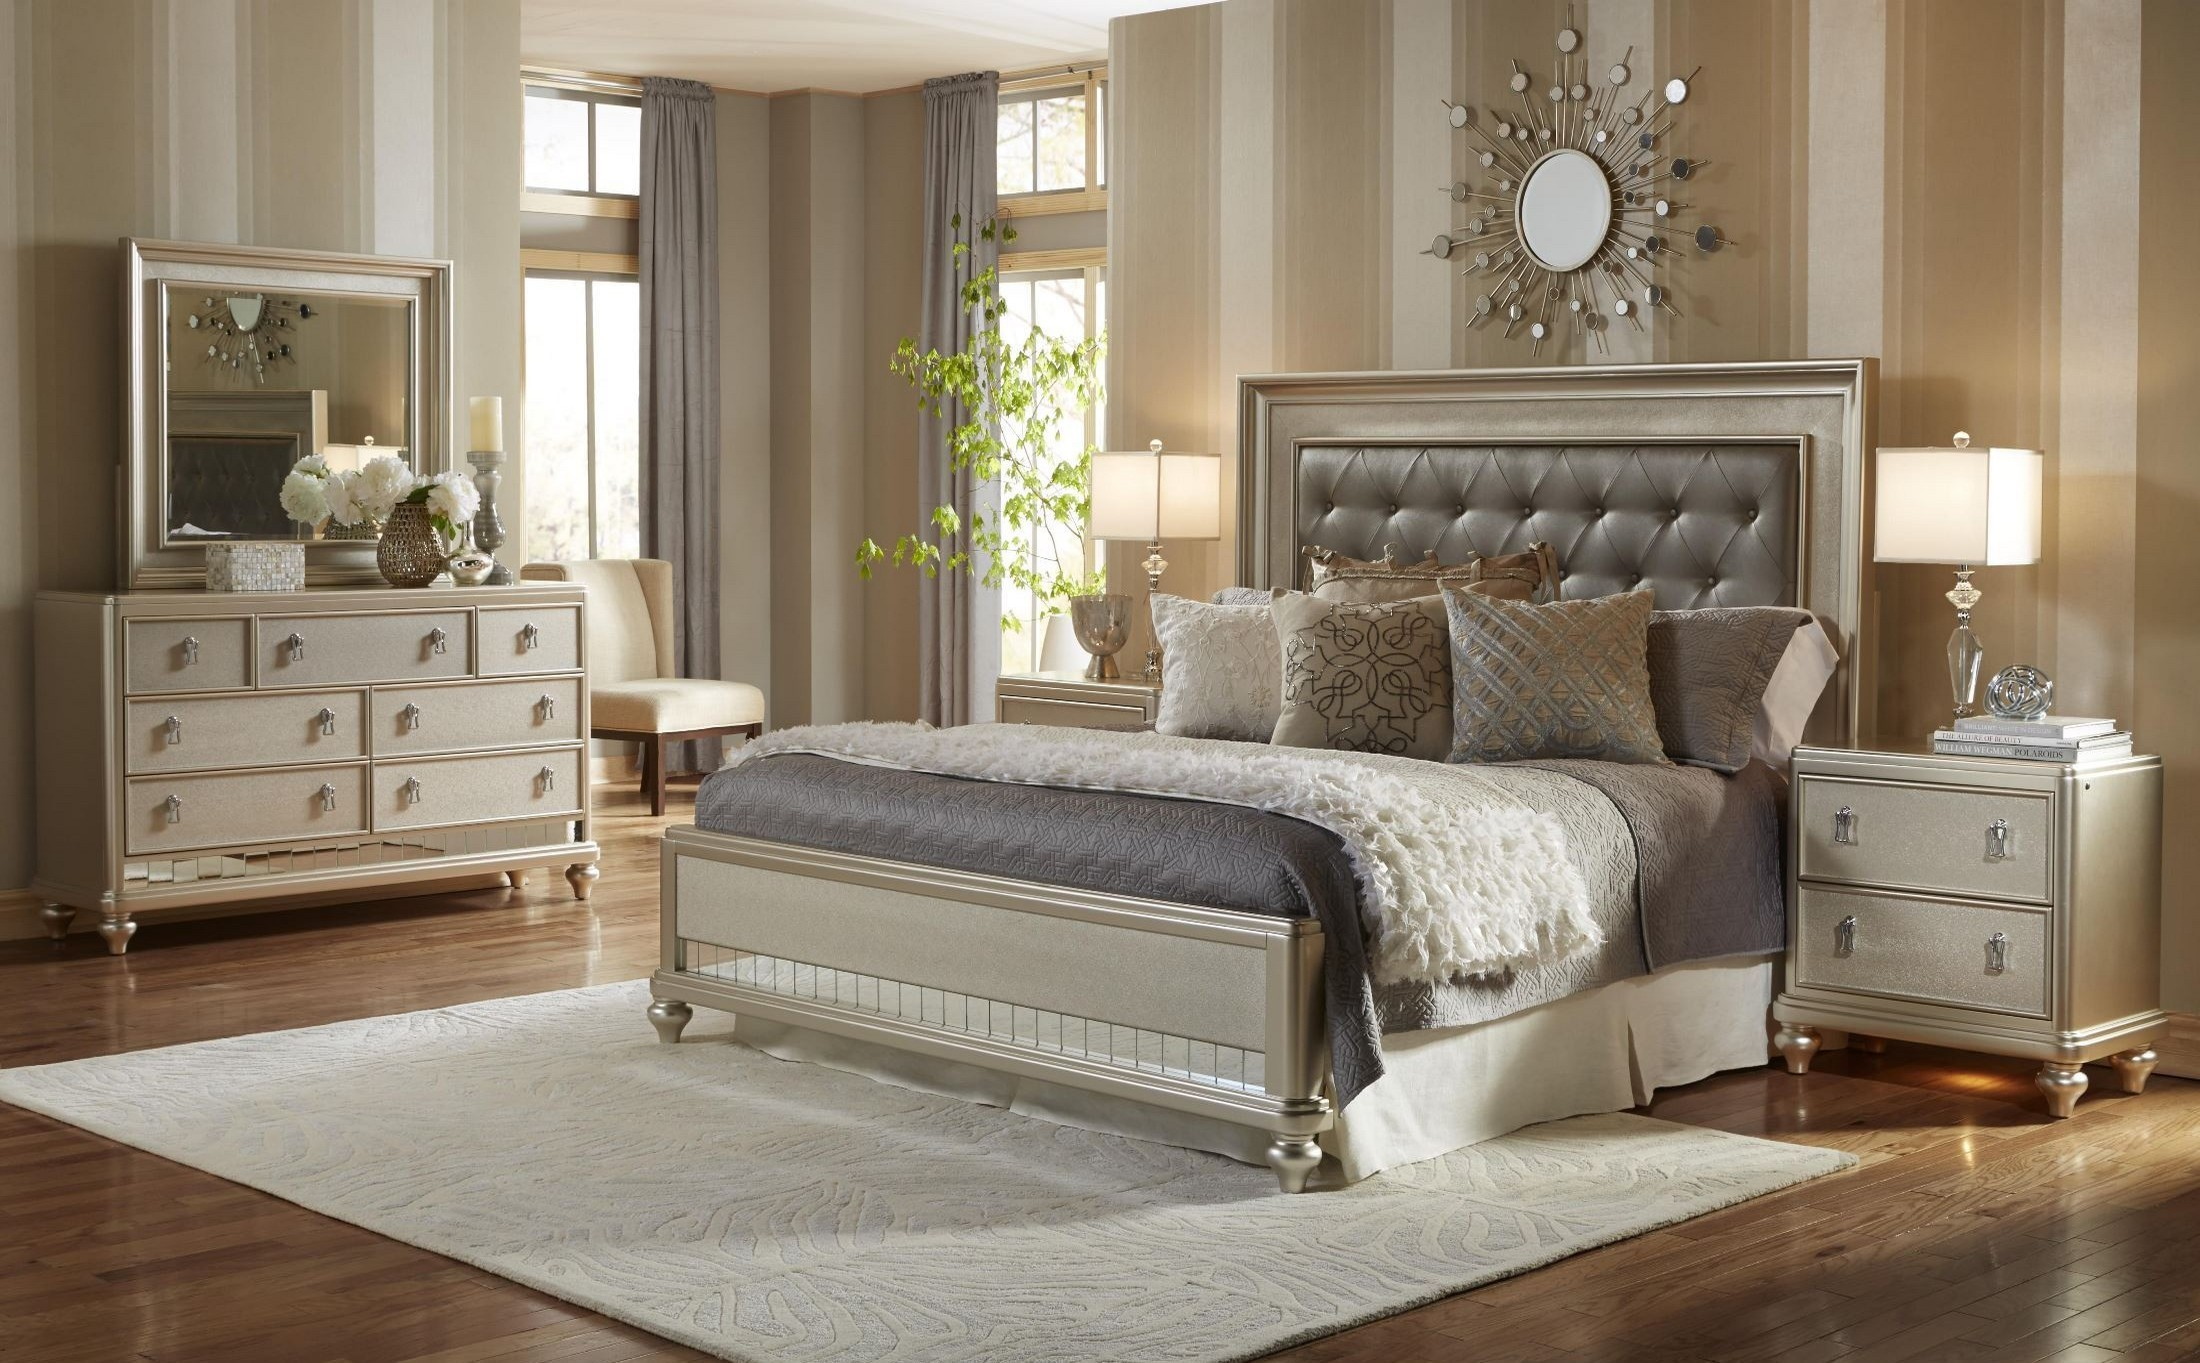 Diva Panel Bedroom Set From Samuel Lawrence (8808-255-257